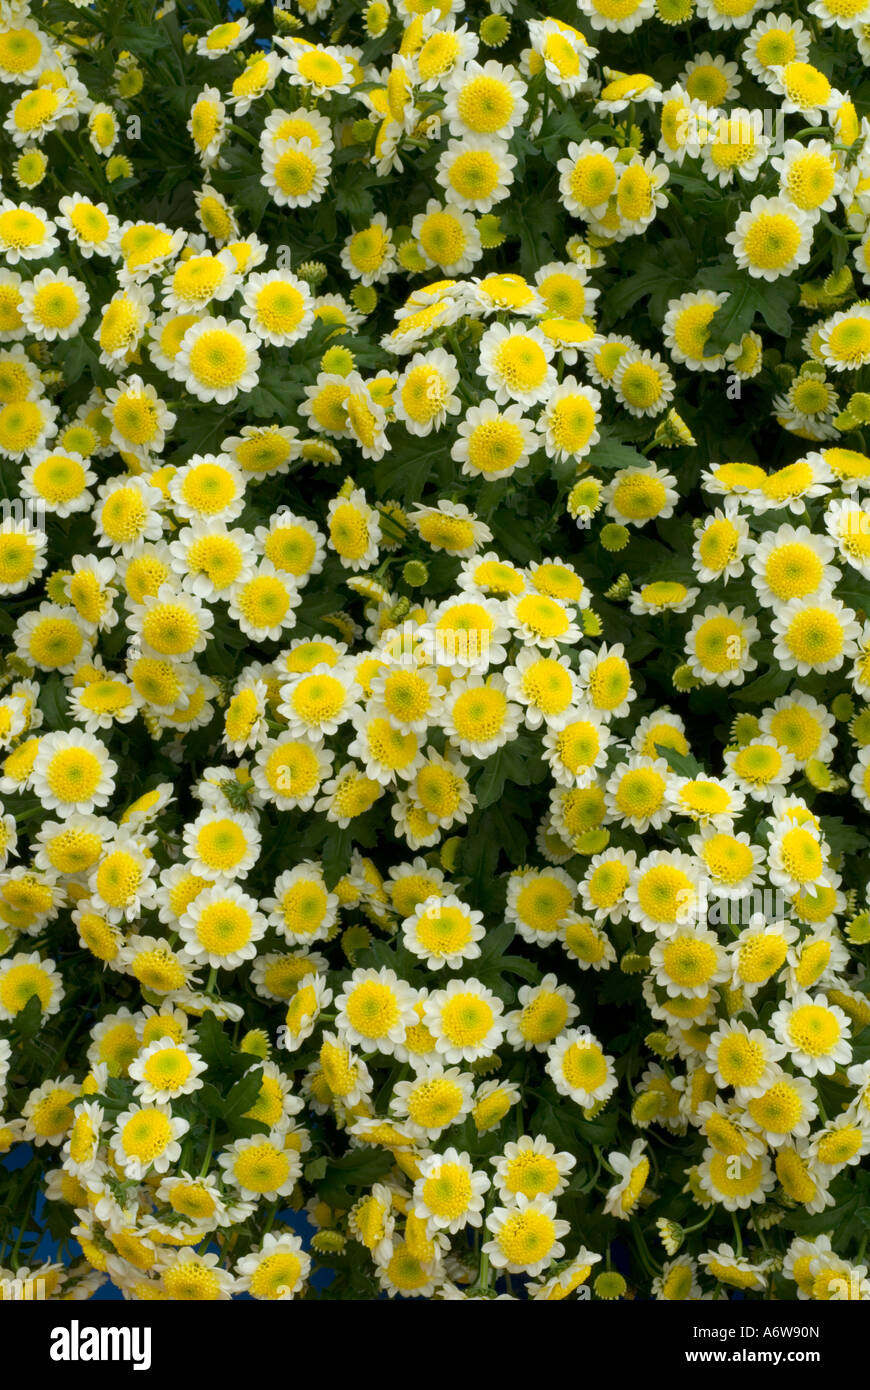 Lots of tiny white flowers blooming in the grass stock photo pink geranium chrysanthemum sun up tiny yellow and white flowers stock photo dhlflorist Image collections